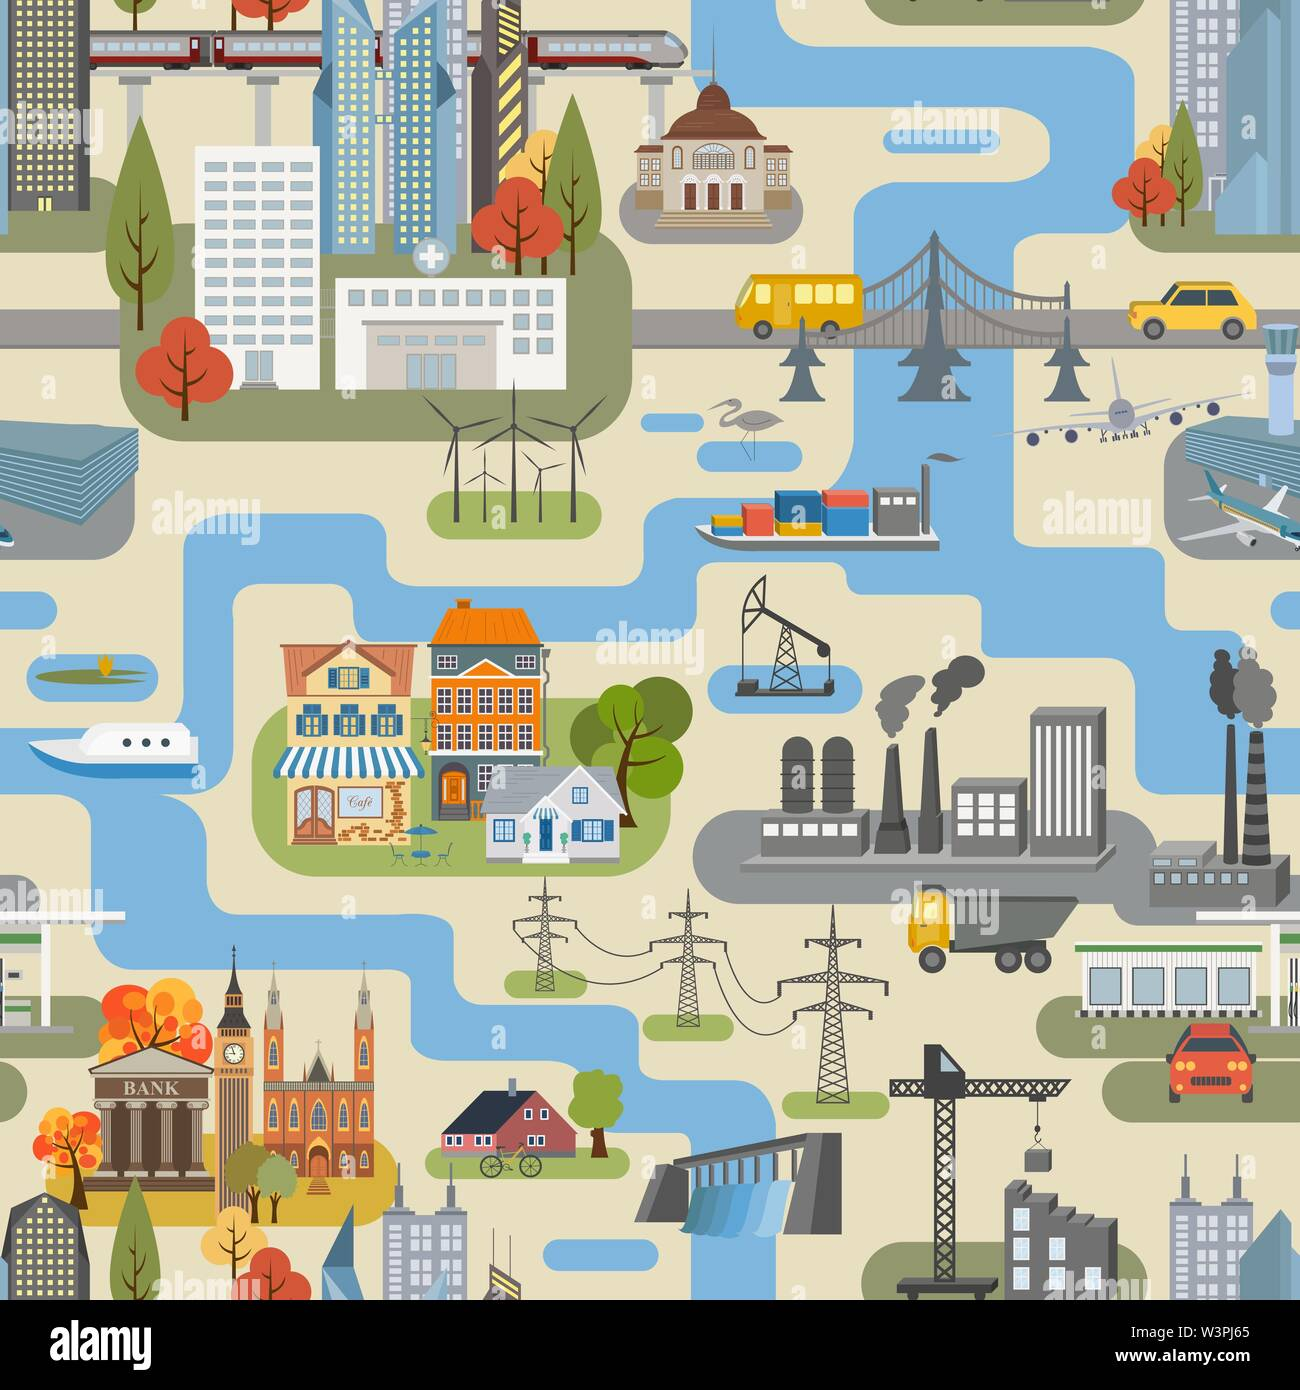 Great city map creator.Seamless pattern map. Houses ... on map country, map projection, map marker, map of c, map layers, world map outline, map world, map illustrator, map title, map of canada, map north, site map creator, map of germany, map of westeros, map history, map of africa, map pushpin icon, map making, map scale, map of us national parks, map colors, map star, map background, map name, map of europe and united states, grid map,